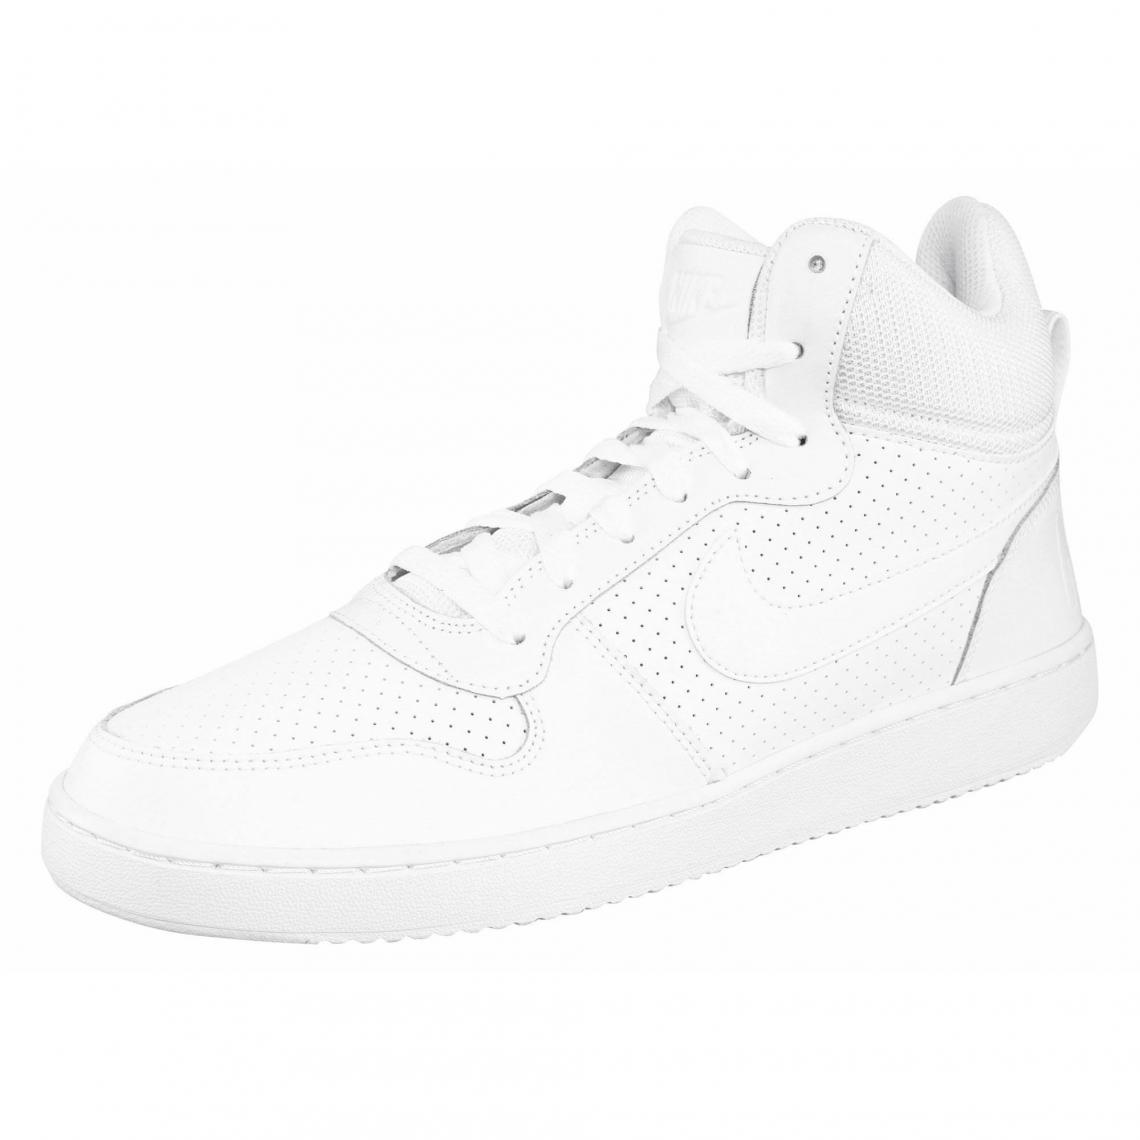 Mid Blanc Borough Homme Montante Court Chaussure Nike Semi AP7Exq0